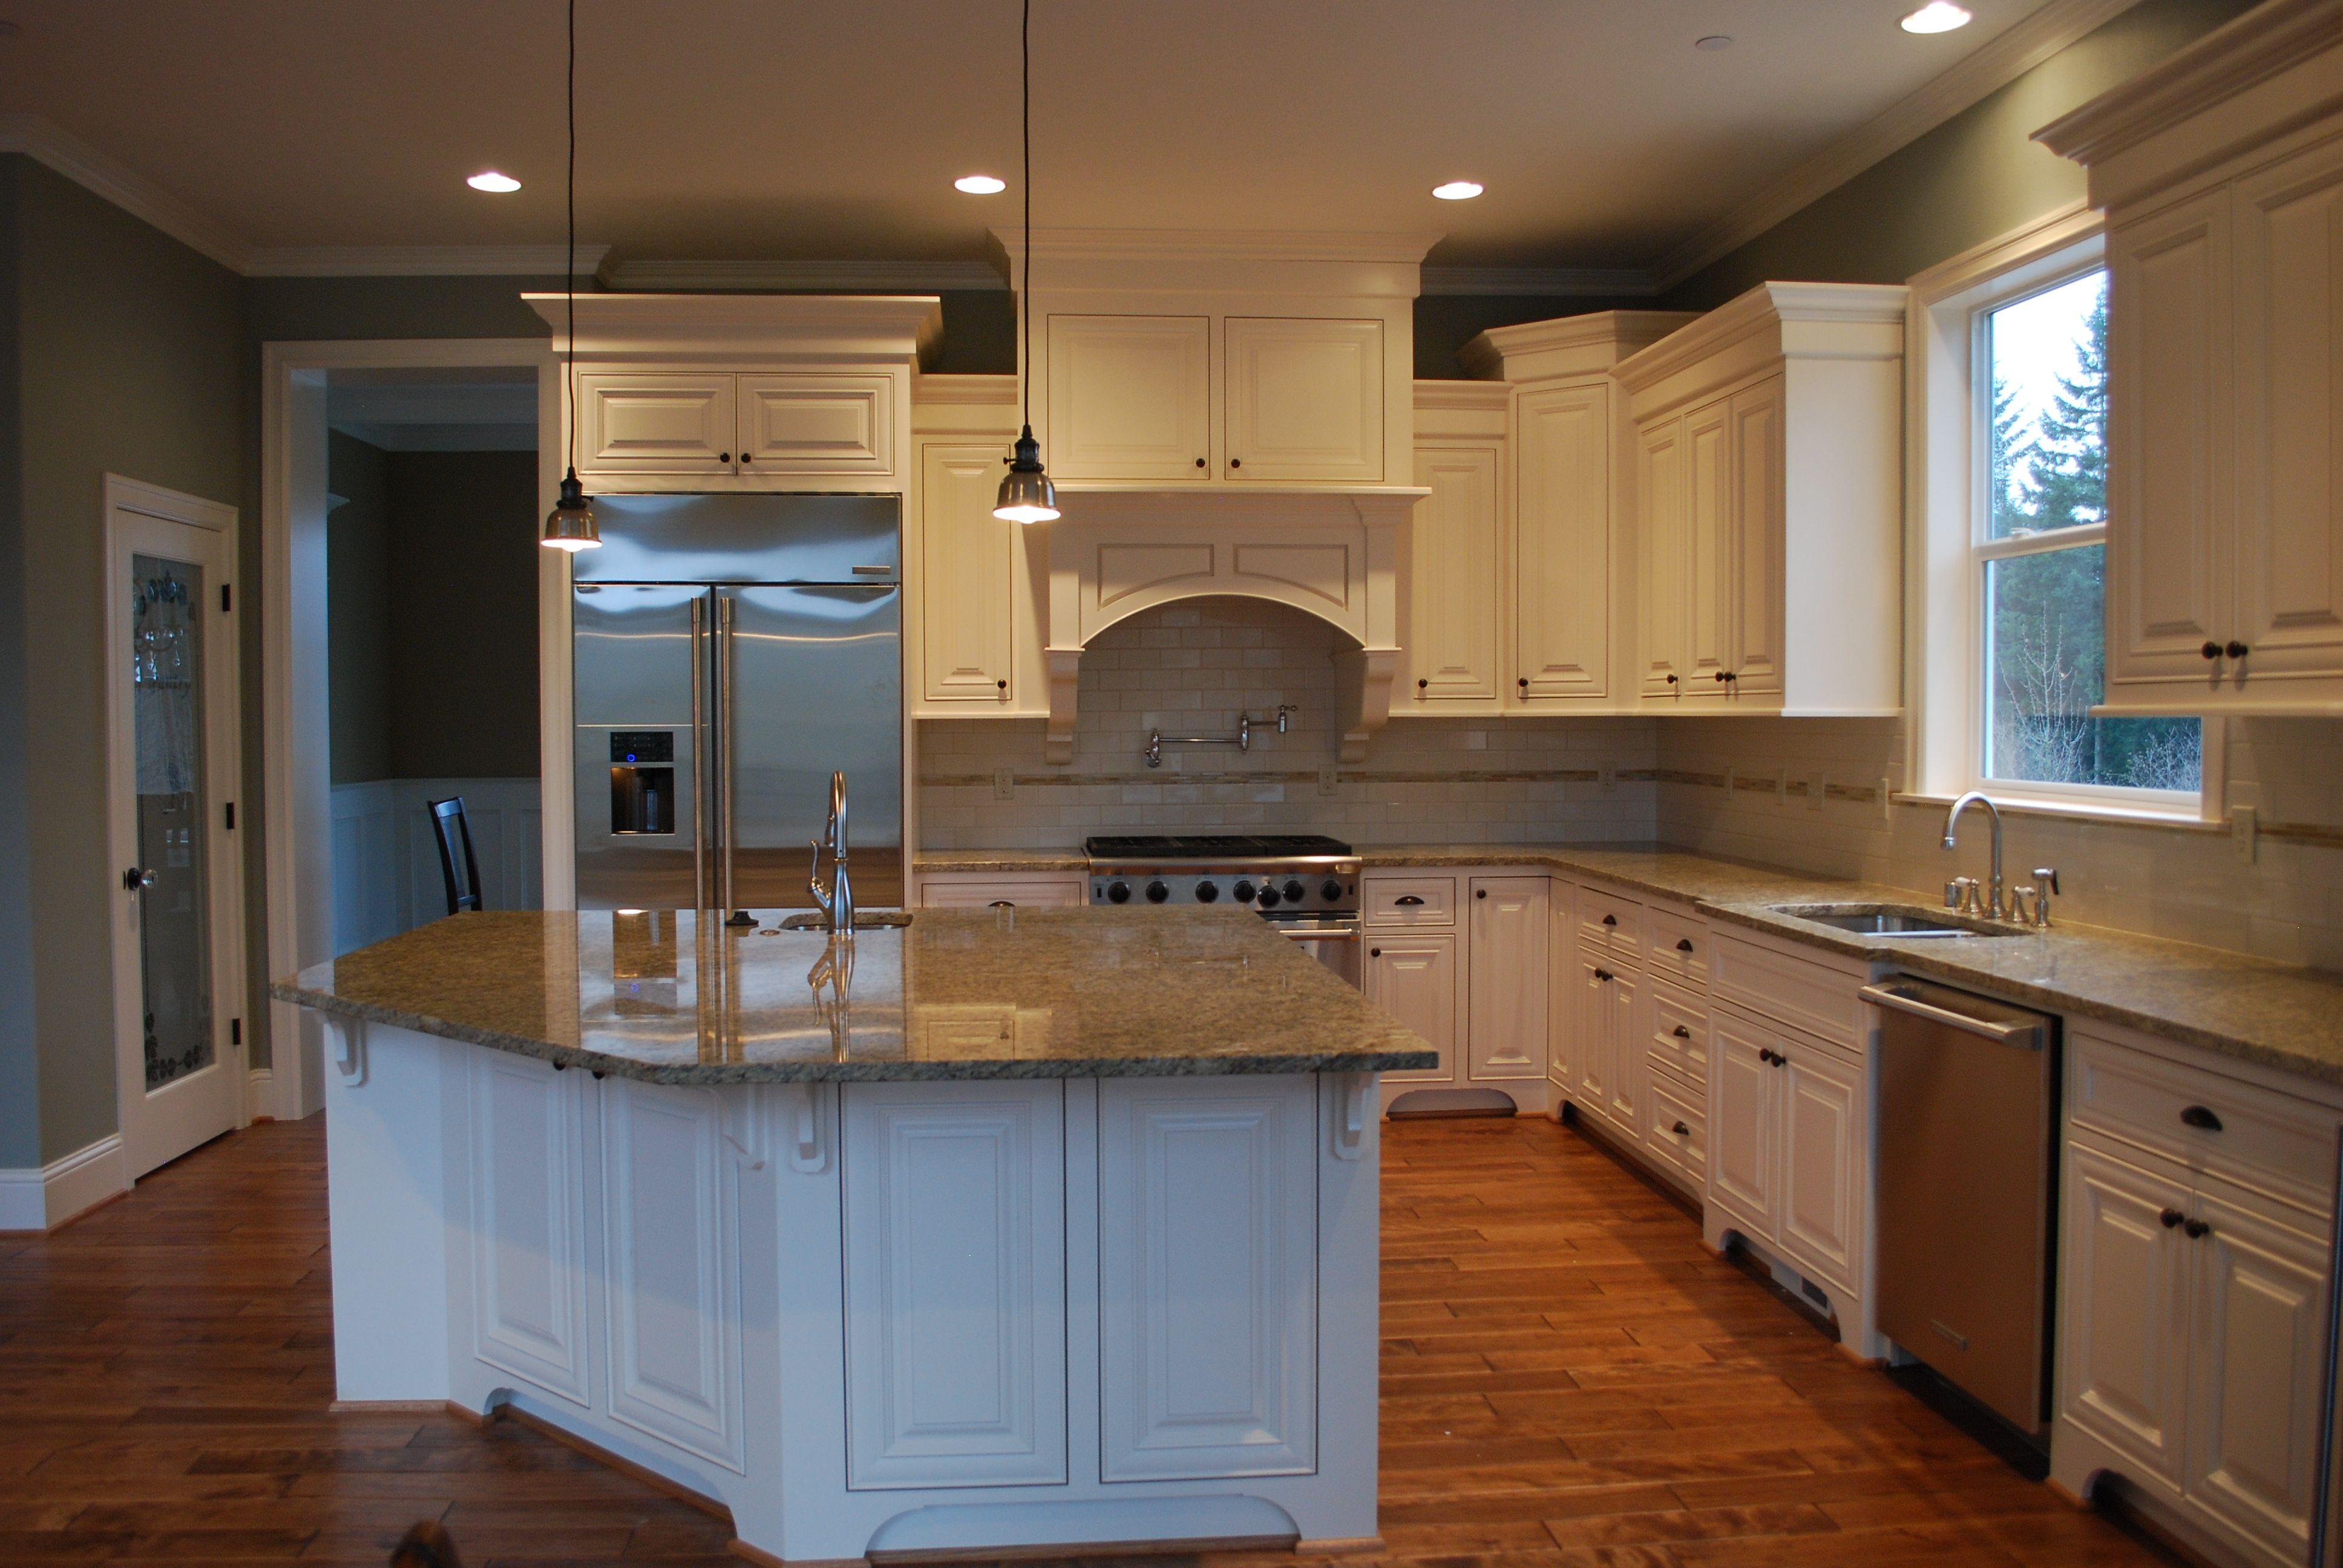 white kitchen with varied height upper cabinets with images upper cabinets kitchen on kitchen cabinets upper id=46741